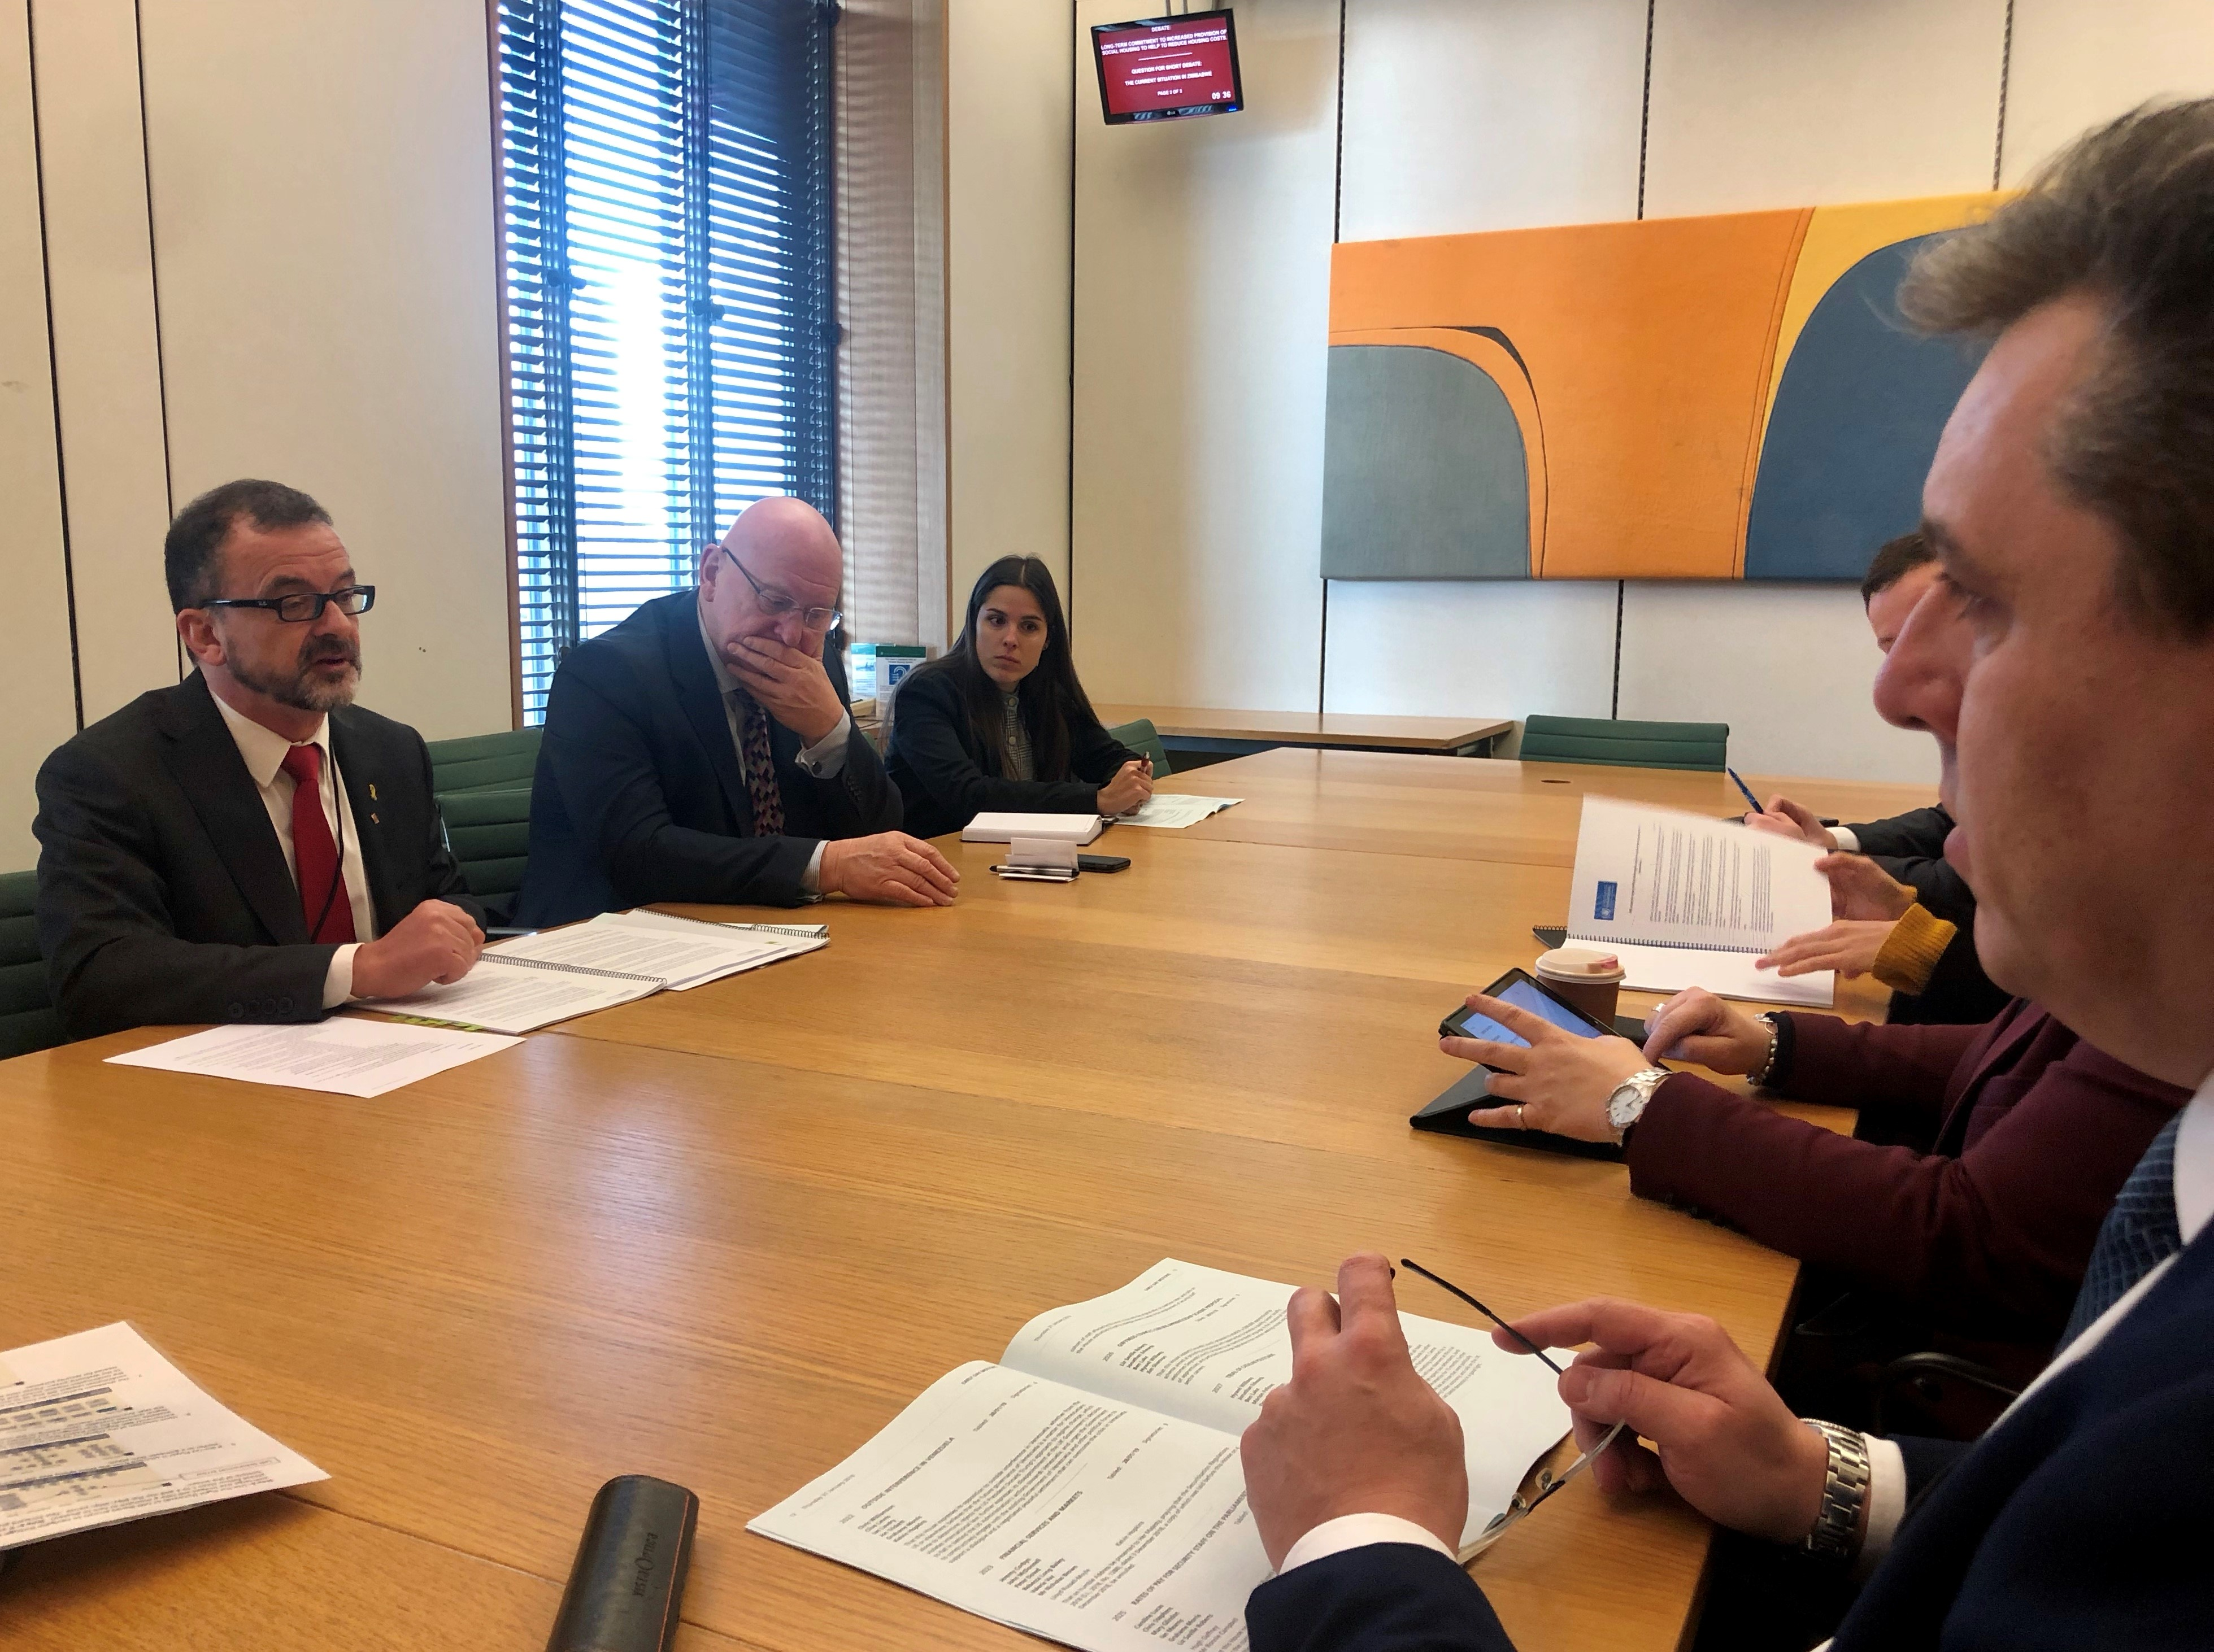 Minister Alfred Bosch met with members of the APPG in London